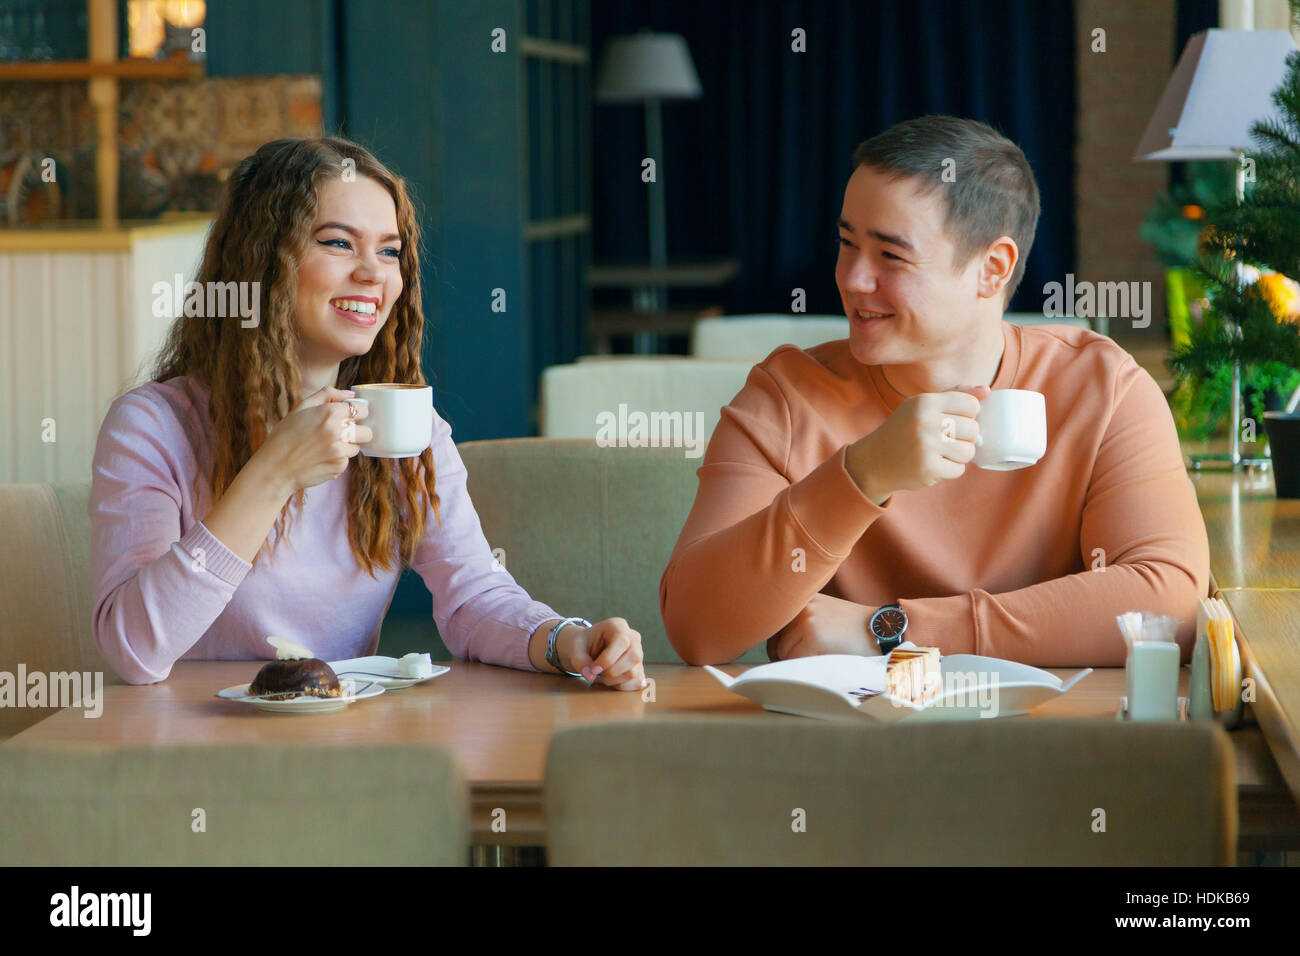 woman and a man in cafe - Stock Image